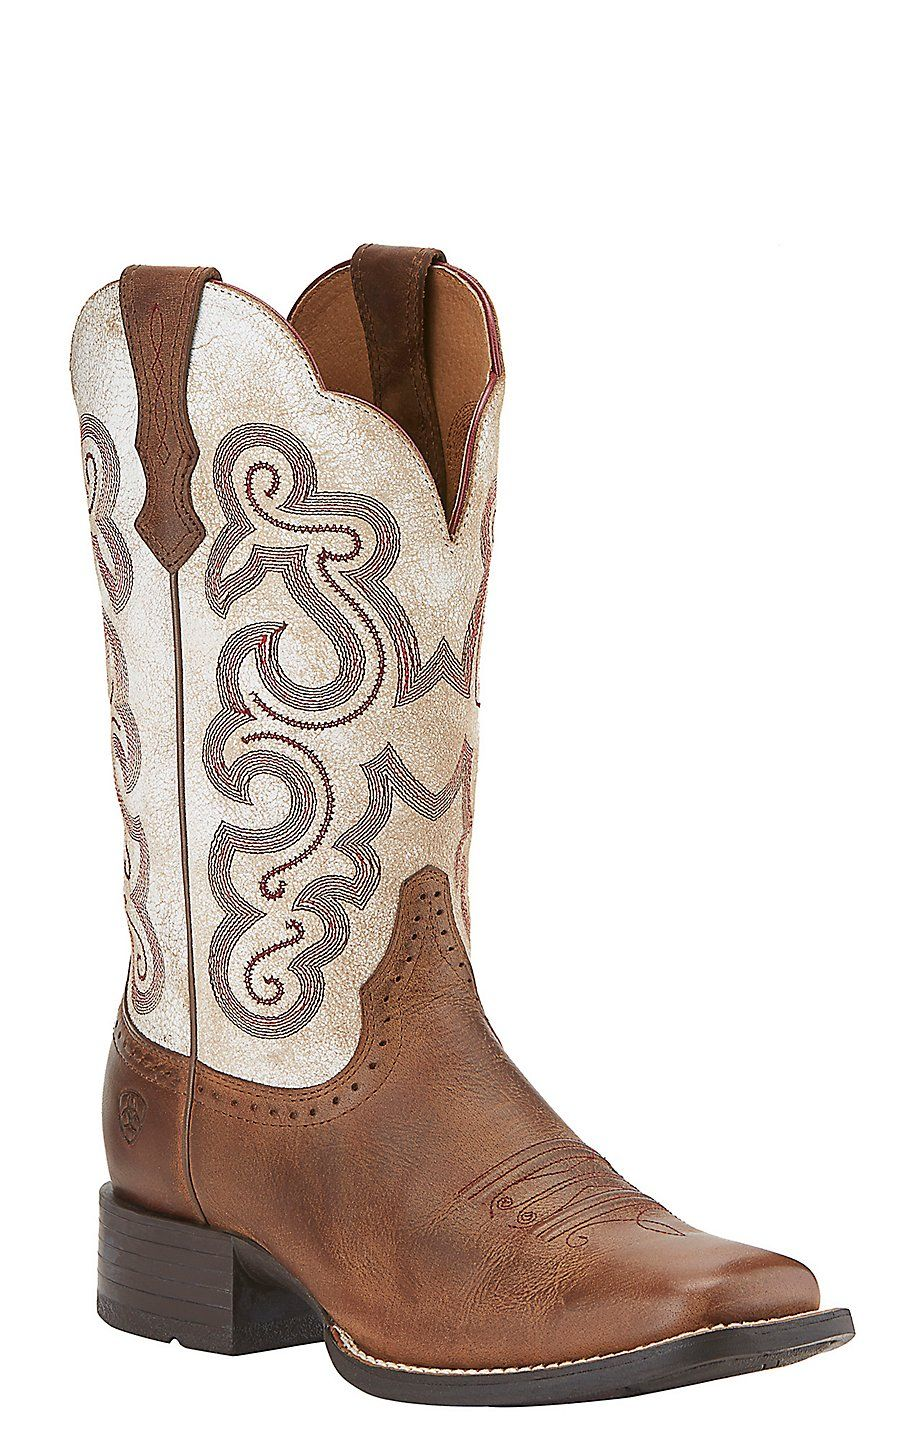 Ariat Quickdraw Women's Sandstorm Brown w/ Distressed White Top ...